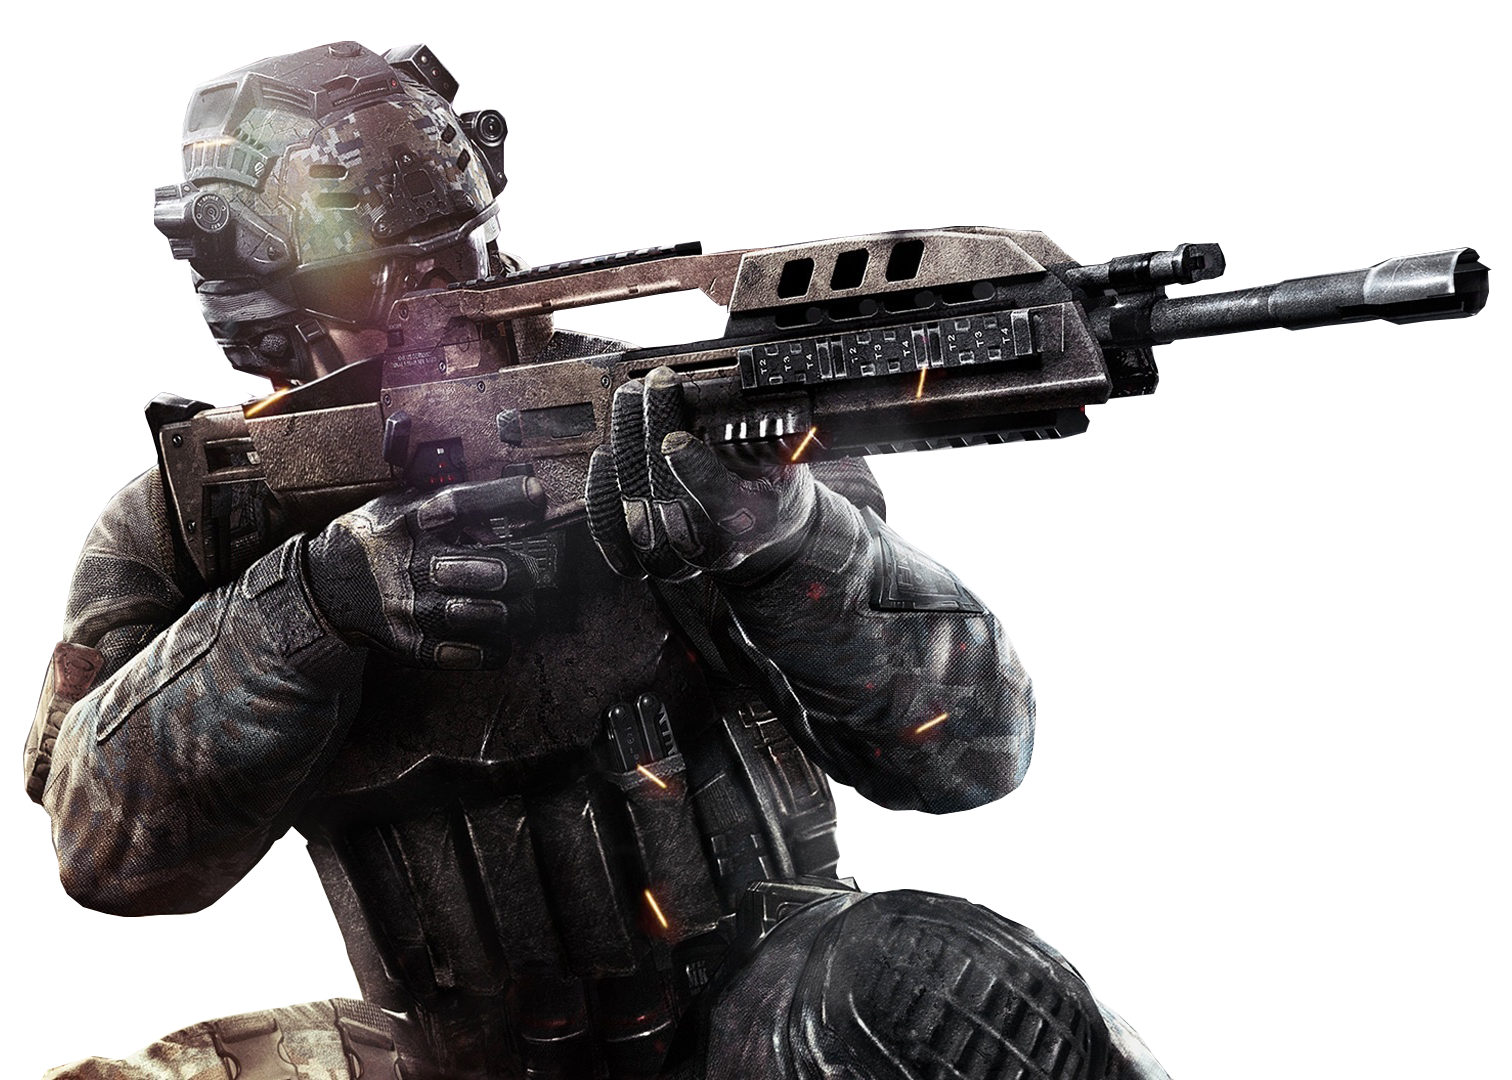 Black ops 3 characters png. Call of duty iii